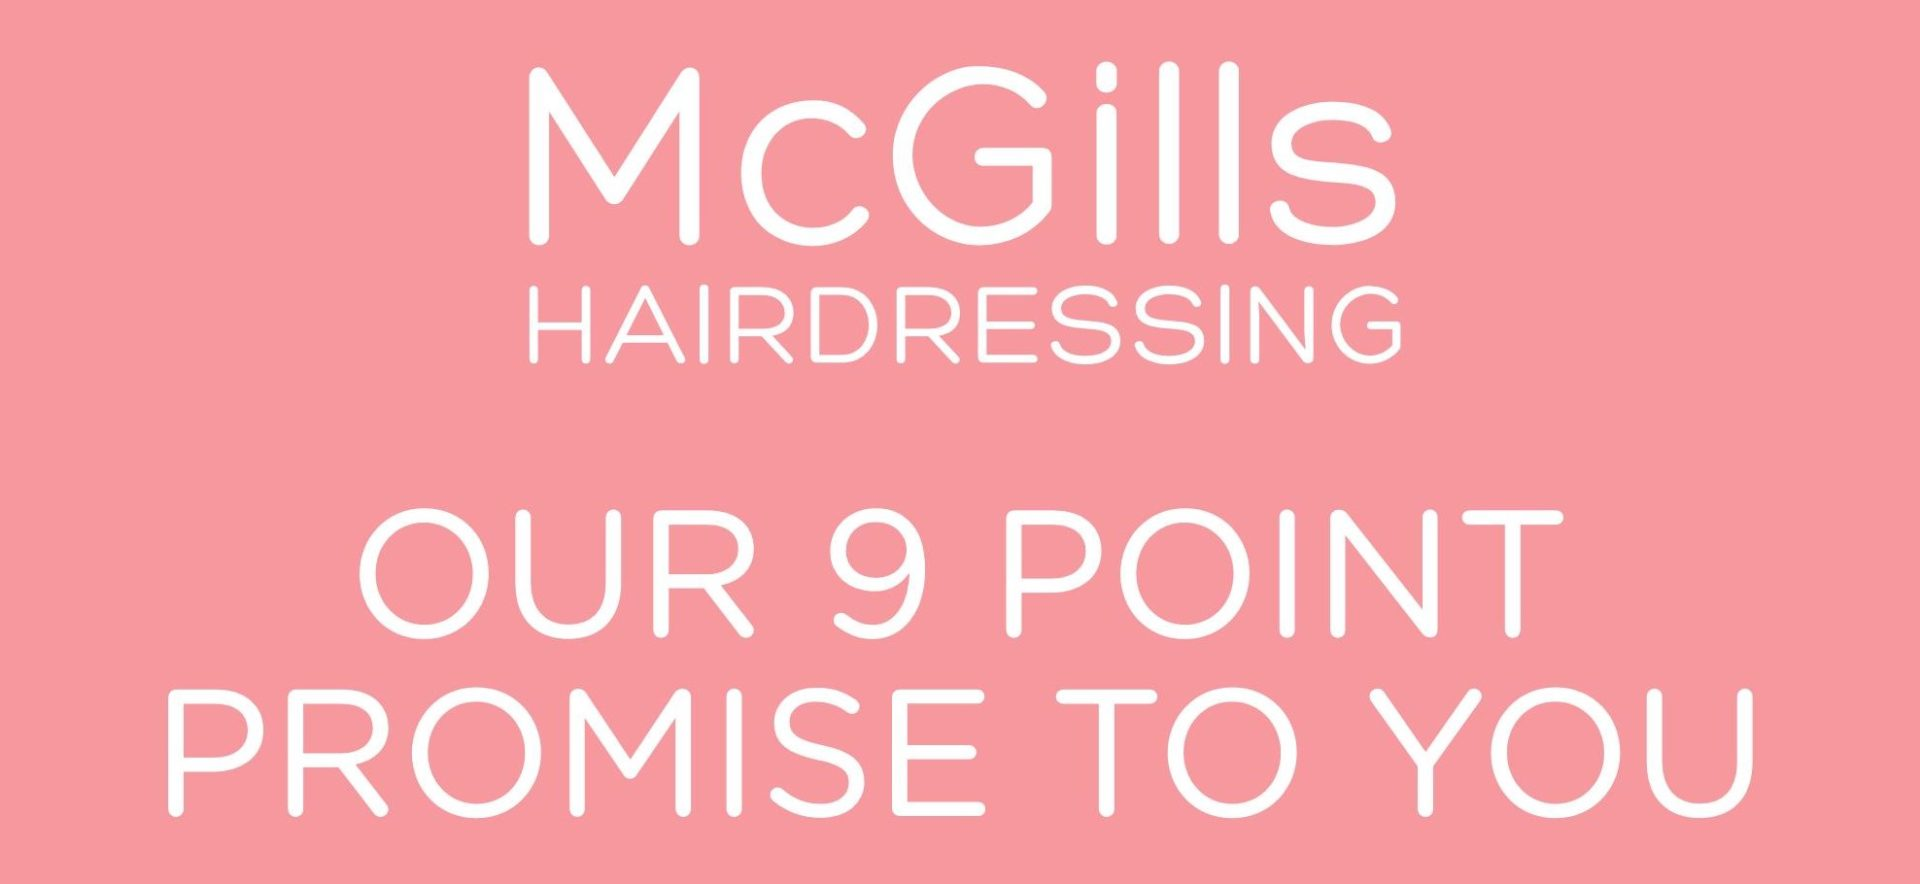 McGills 9 Point Promise, Safety Precautions Following the Reopening of The Salon after Lockdown